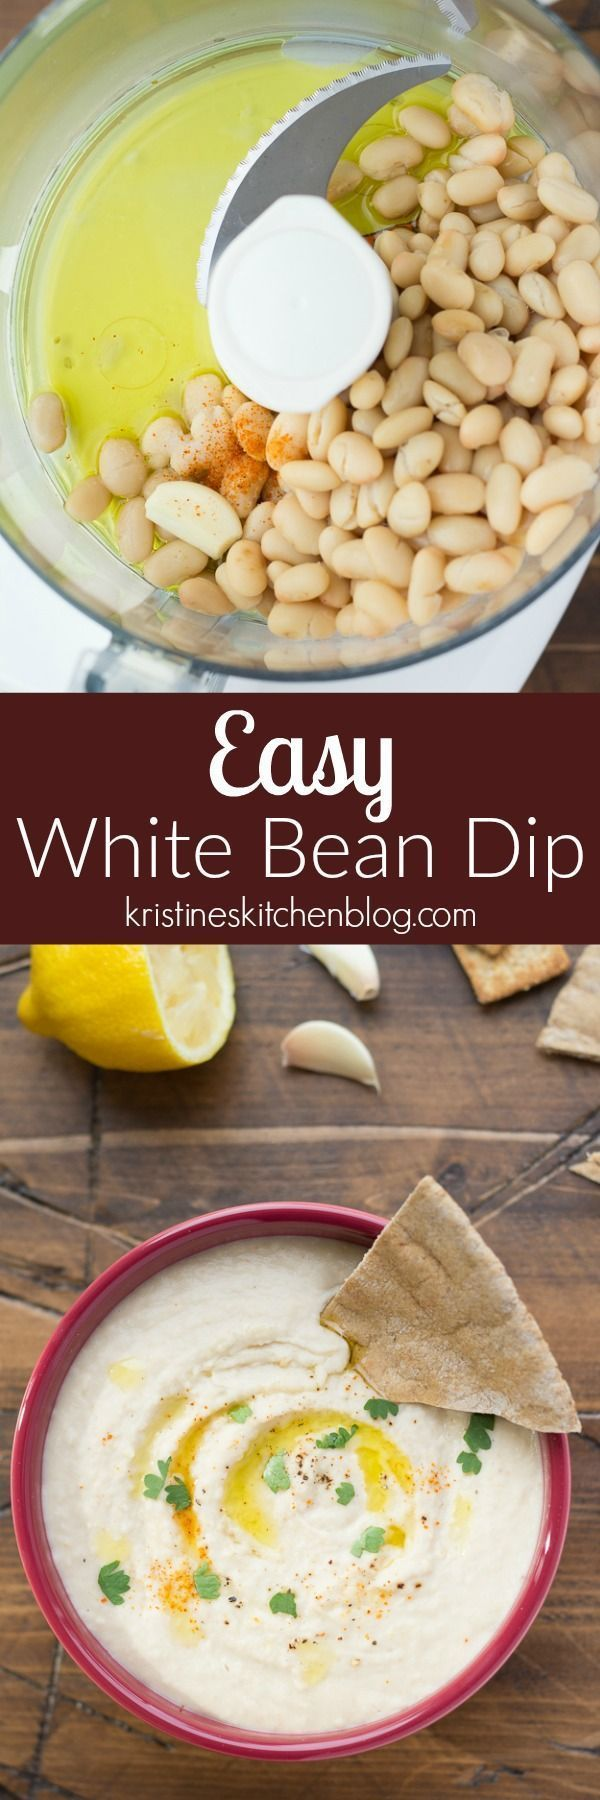 This Easy White Bean Dip is one of my family's favorite healthy snacks! It's made with just a few simple ingredients that you likely have in your kitchen! If you like hummus, you'll love this appetizer!